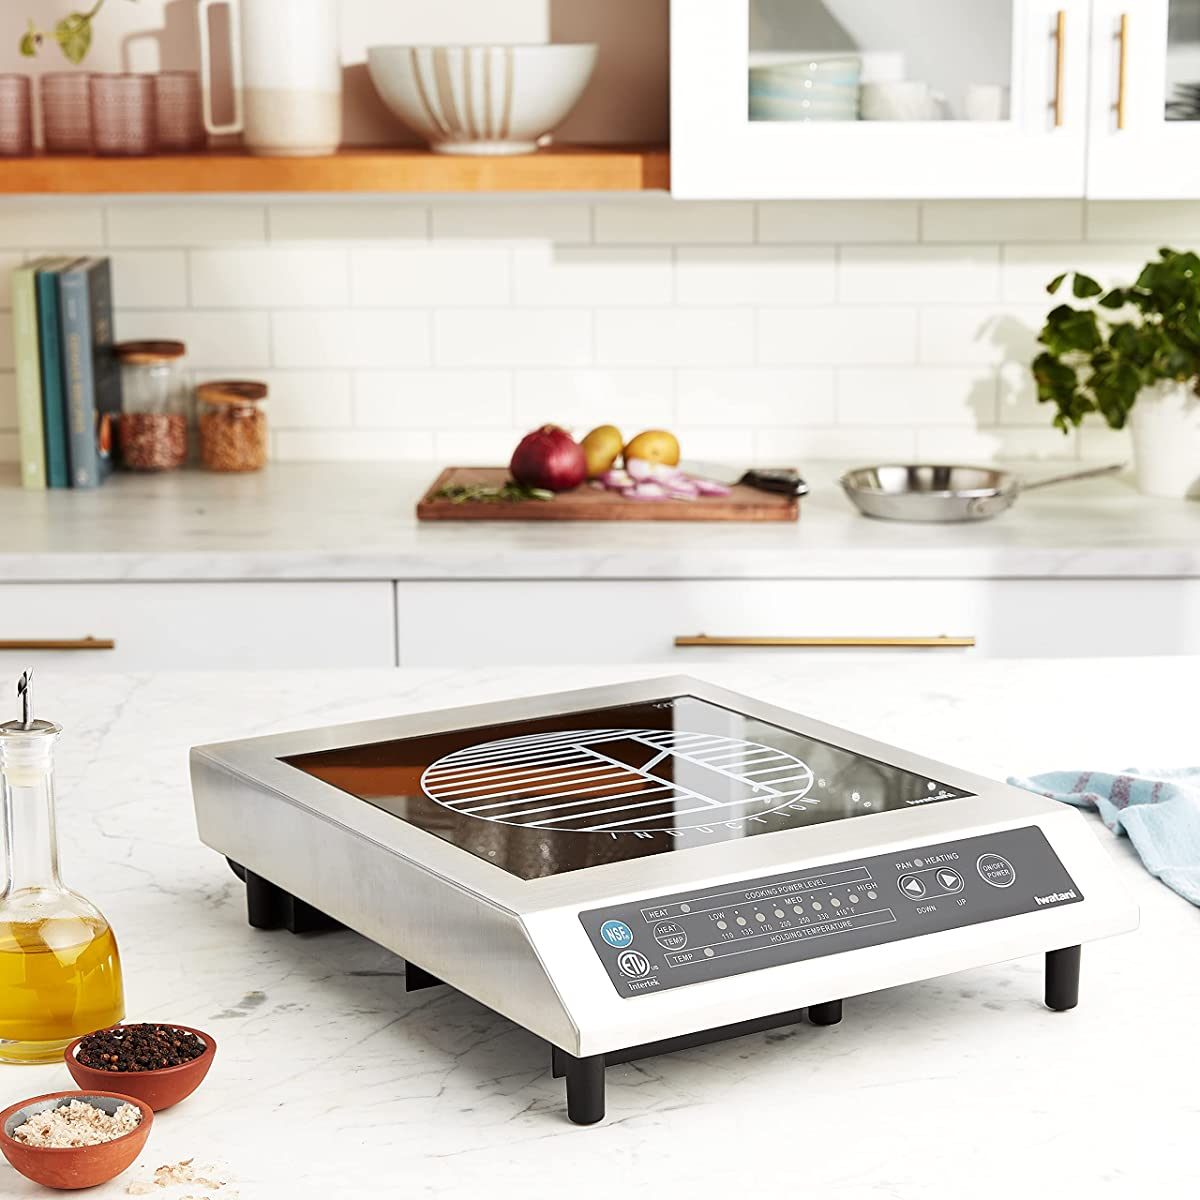 Best Portable Induction Cooktop for the Home